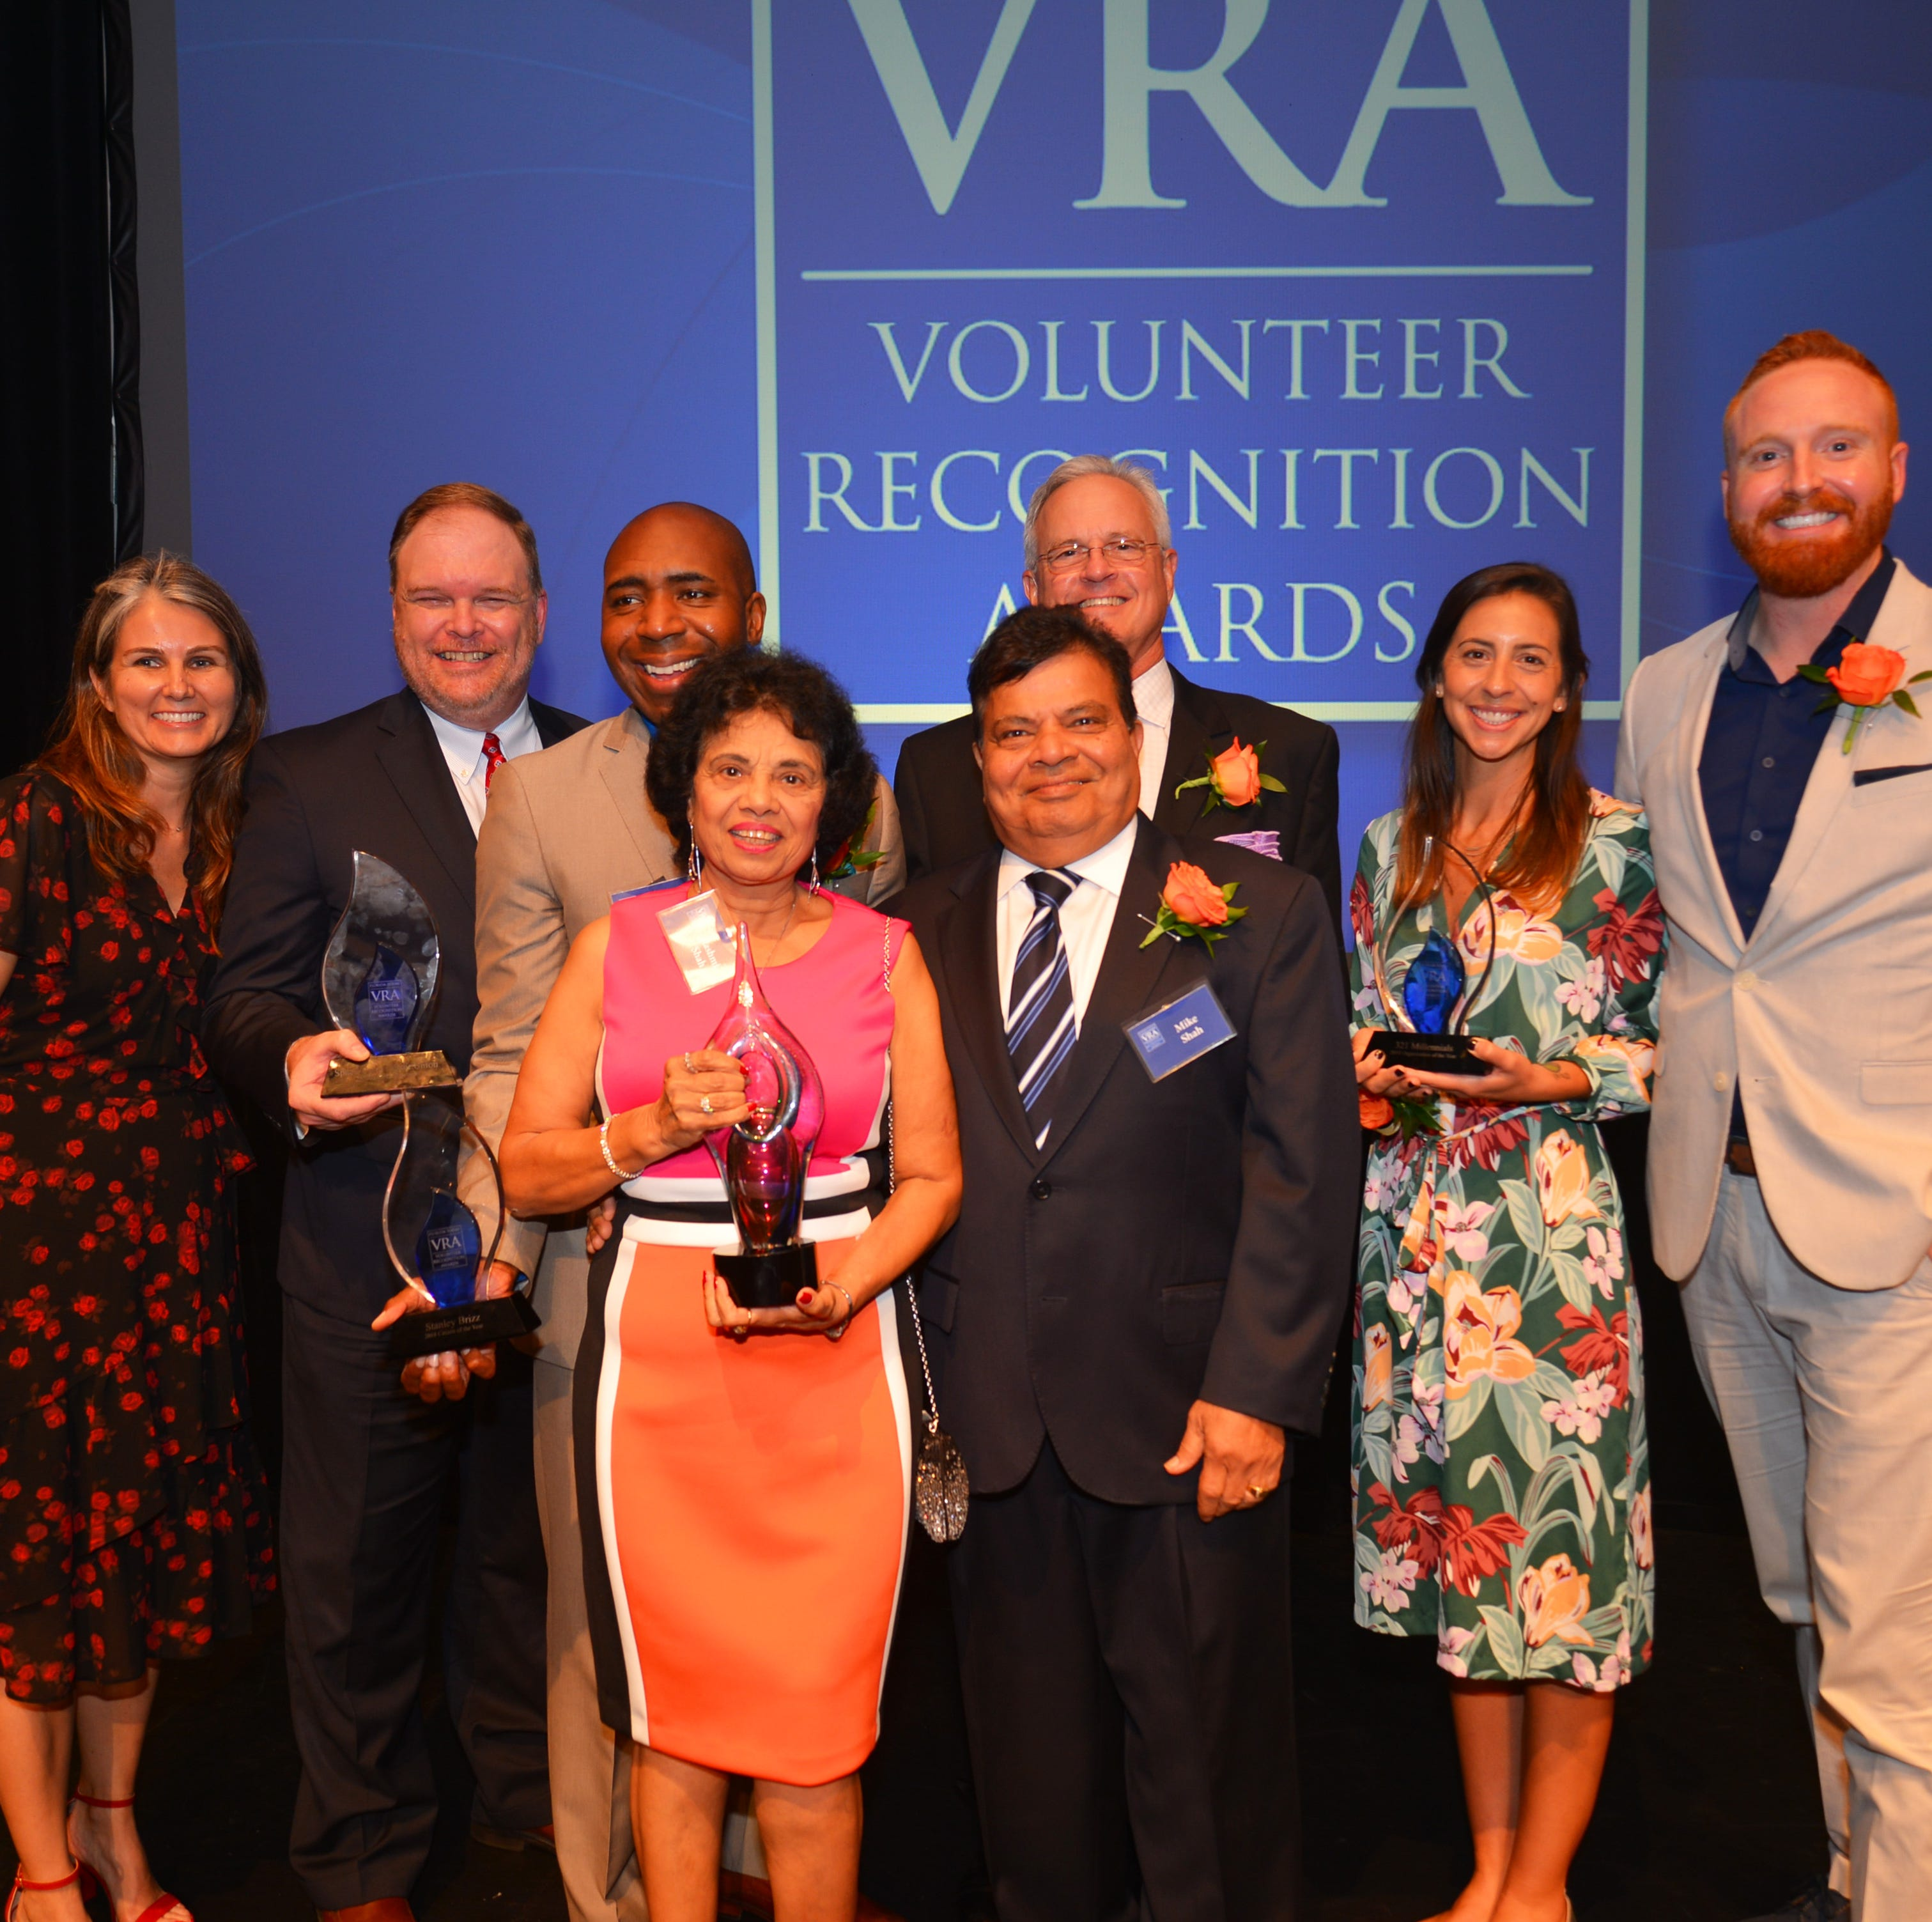 Volunteer Recognition Awards: 321 Millennials, SCCU, David Dugan and Stanley Brizz honored